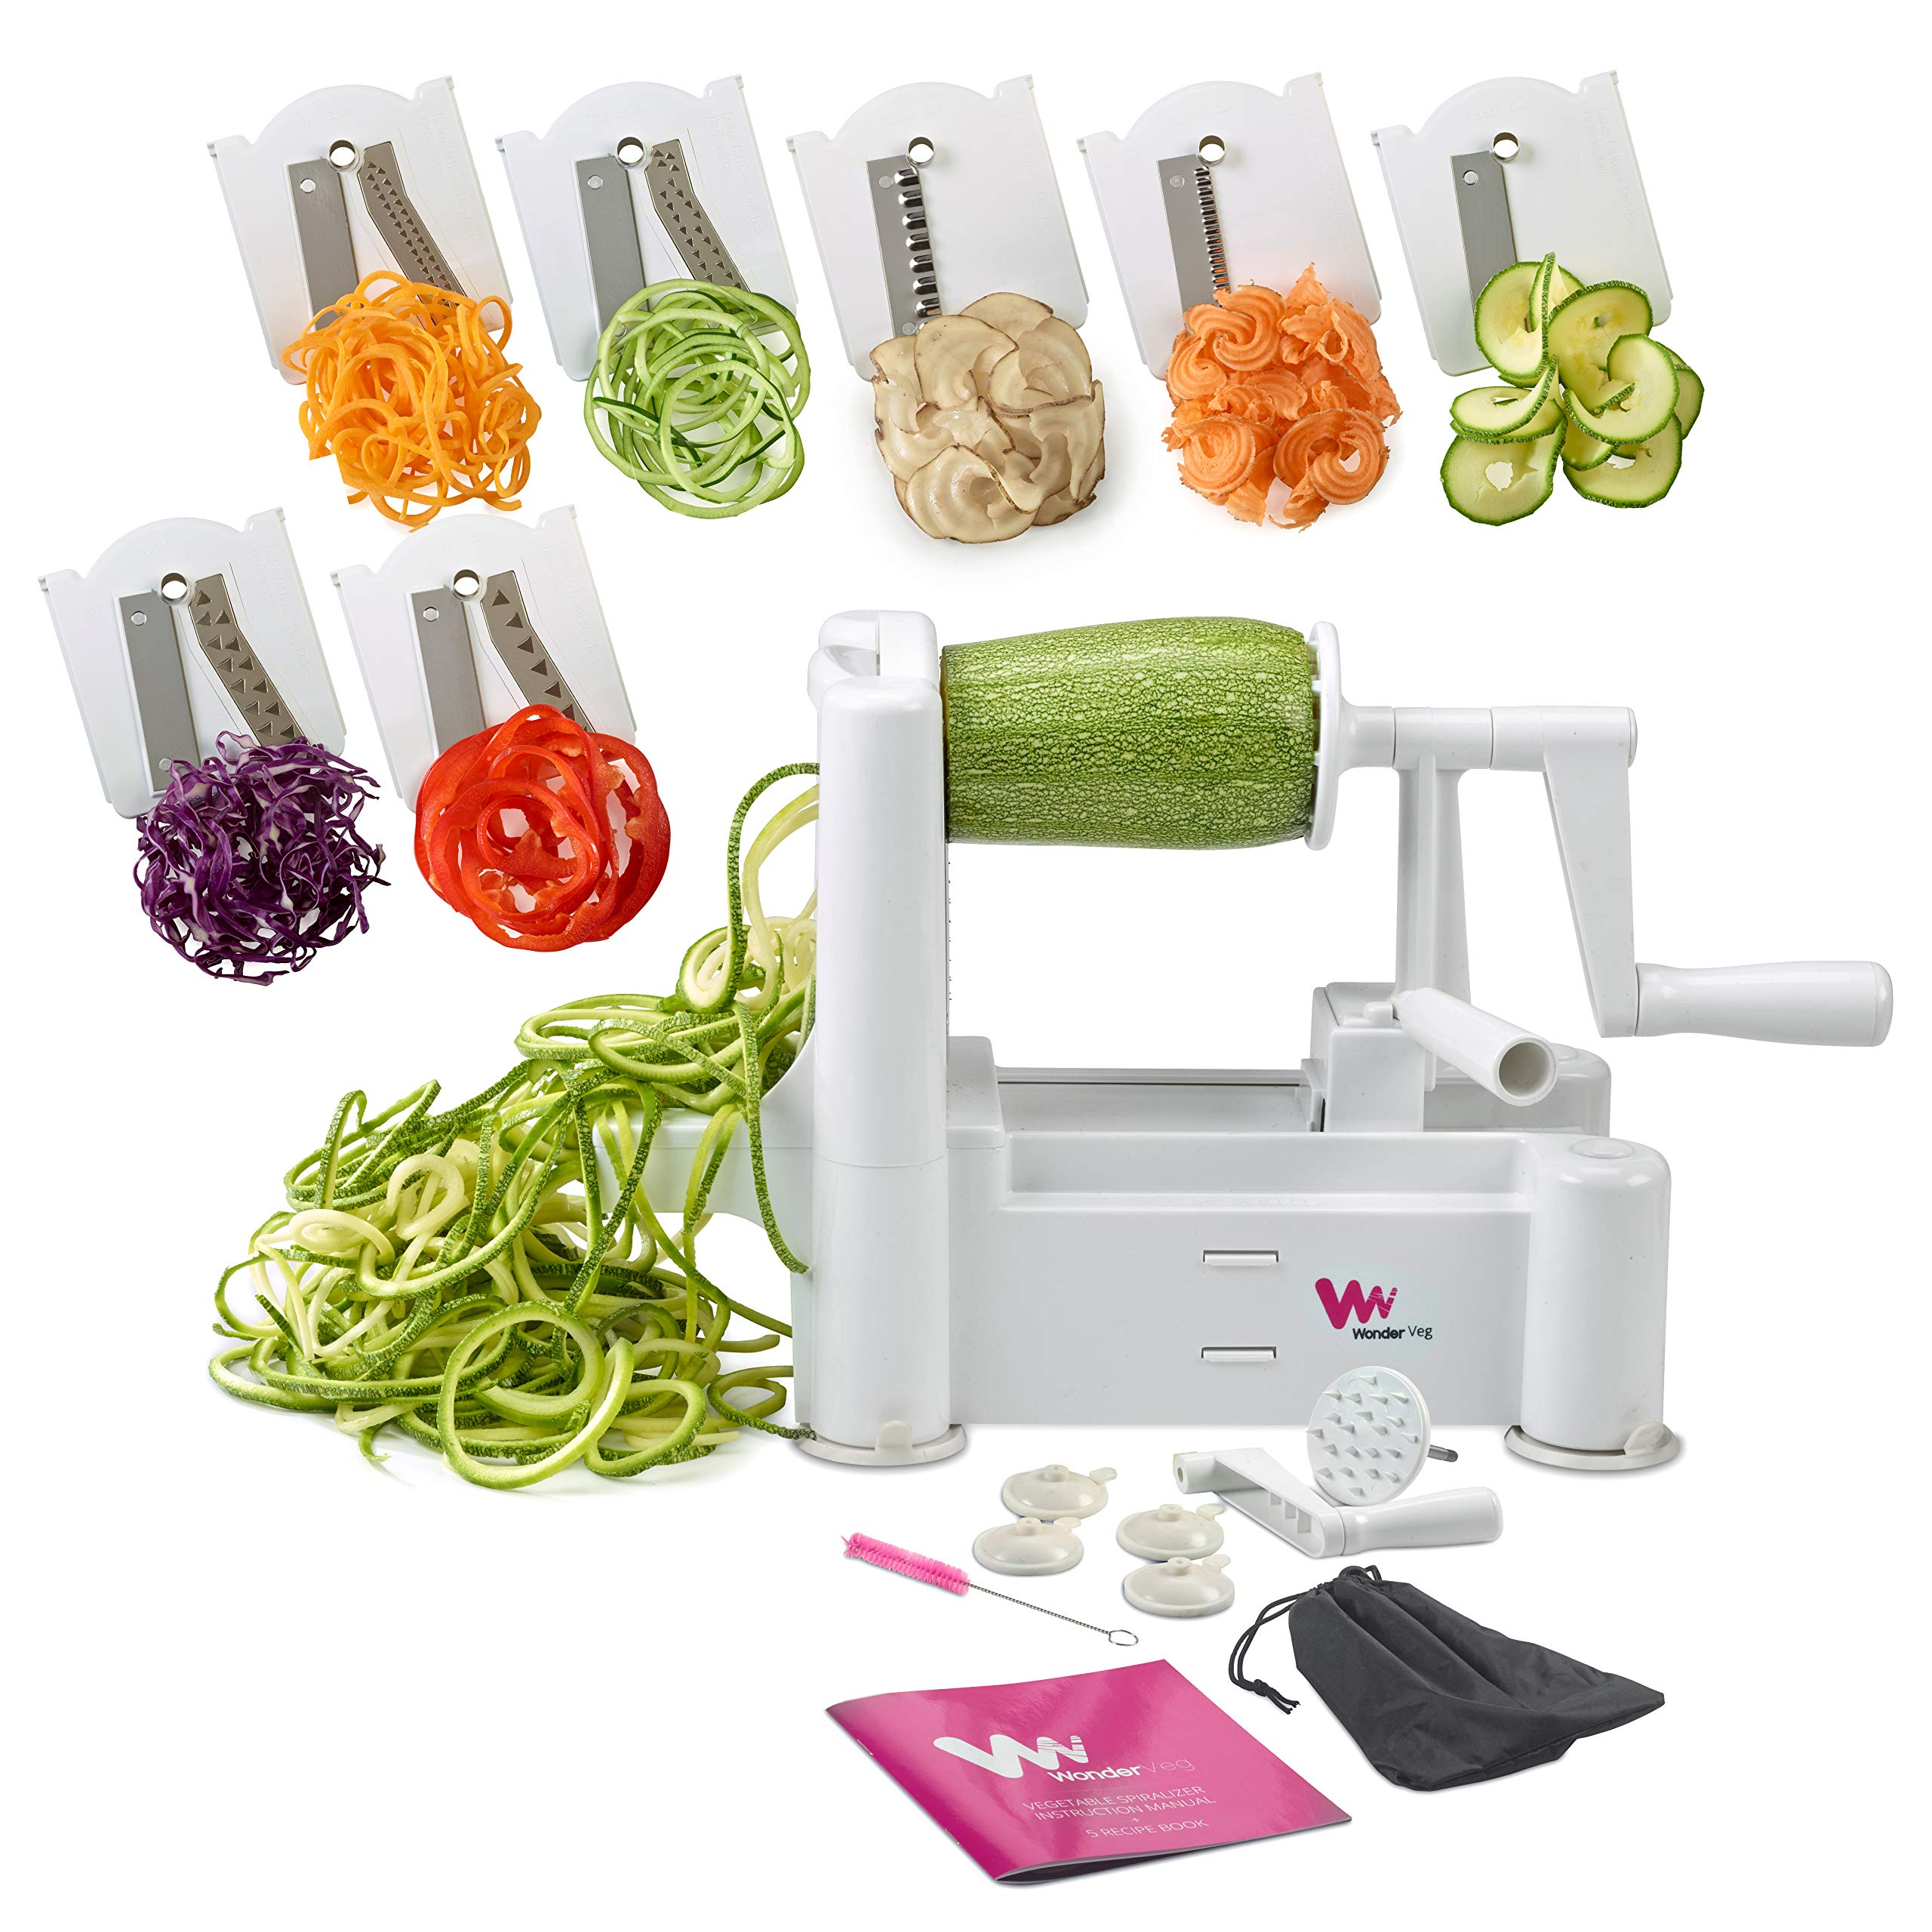 WonderVeg Perfect Vegetable Slicer and Spiralizer with 7-Stainless Steel Blades, White by WonderVeg